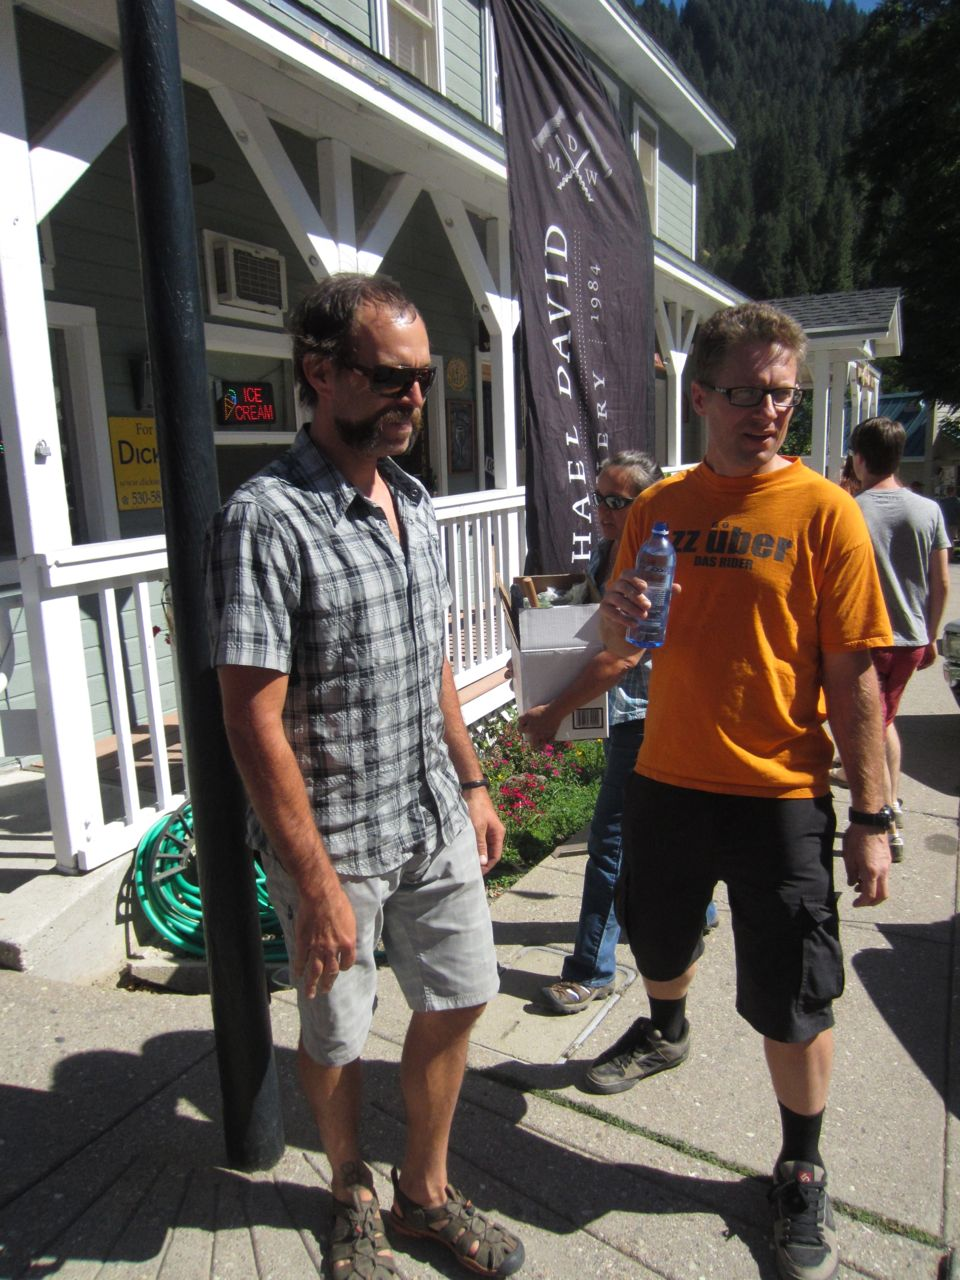 Dejay Birtch and Tim Cannard talking strategy before the first annual Downieville Classic Singlespeed All-Mountain race.